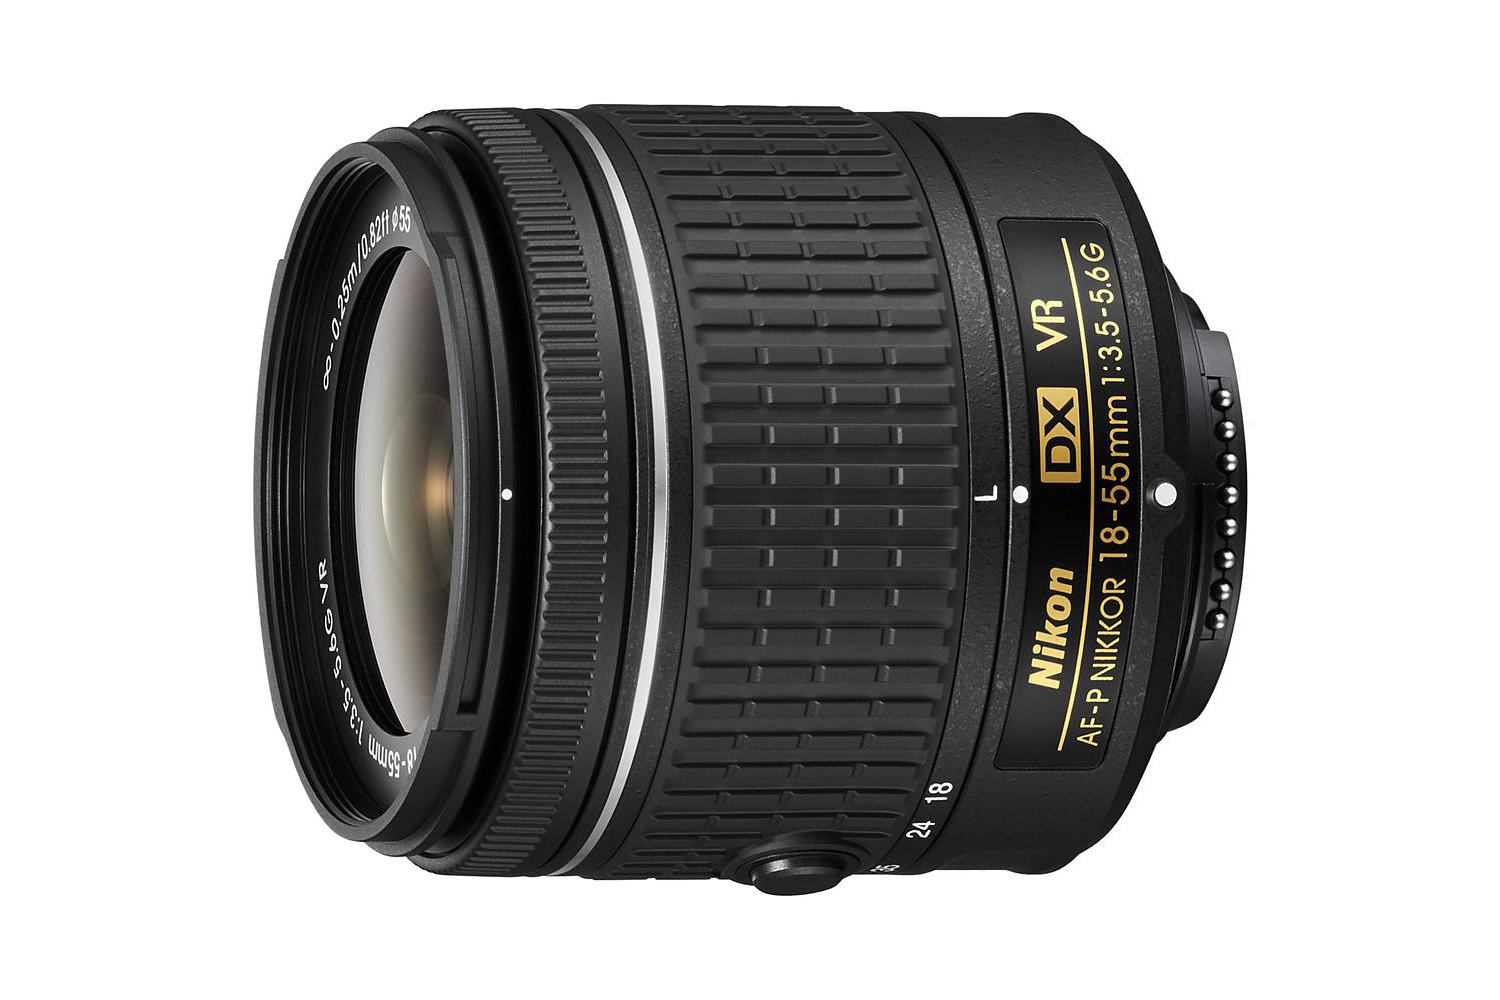 Nikon 18-55mm f/3 5-5 6G DX VR AF-P Review - Photography Life